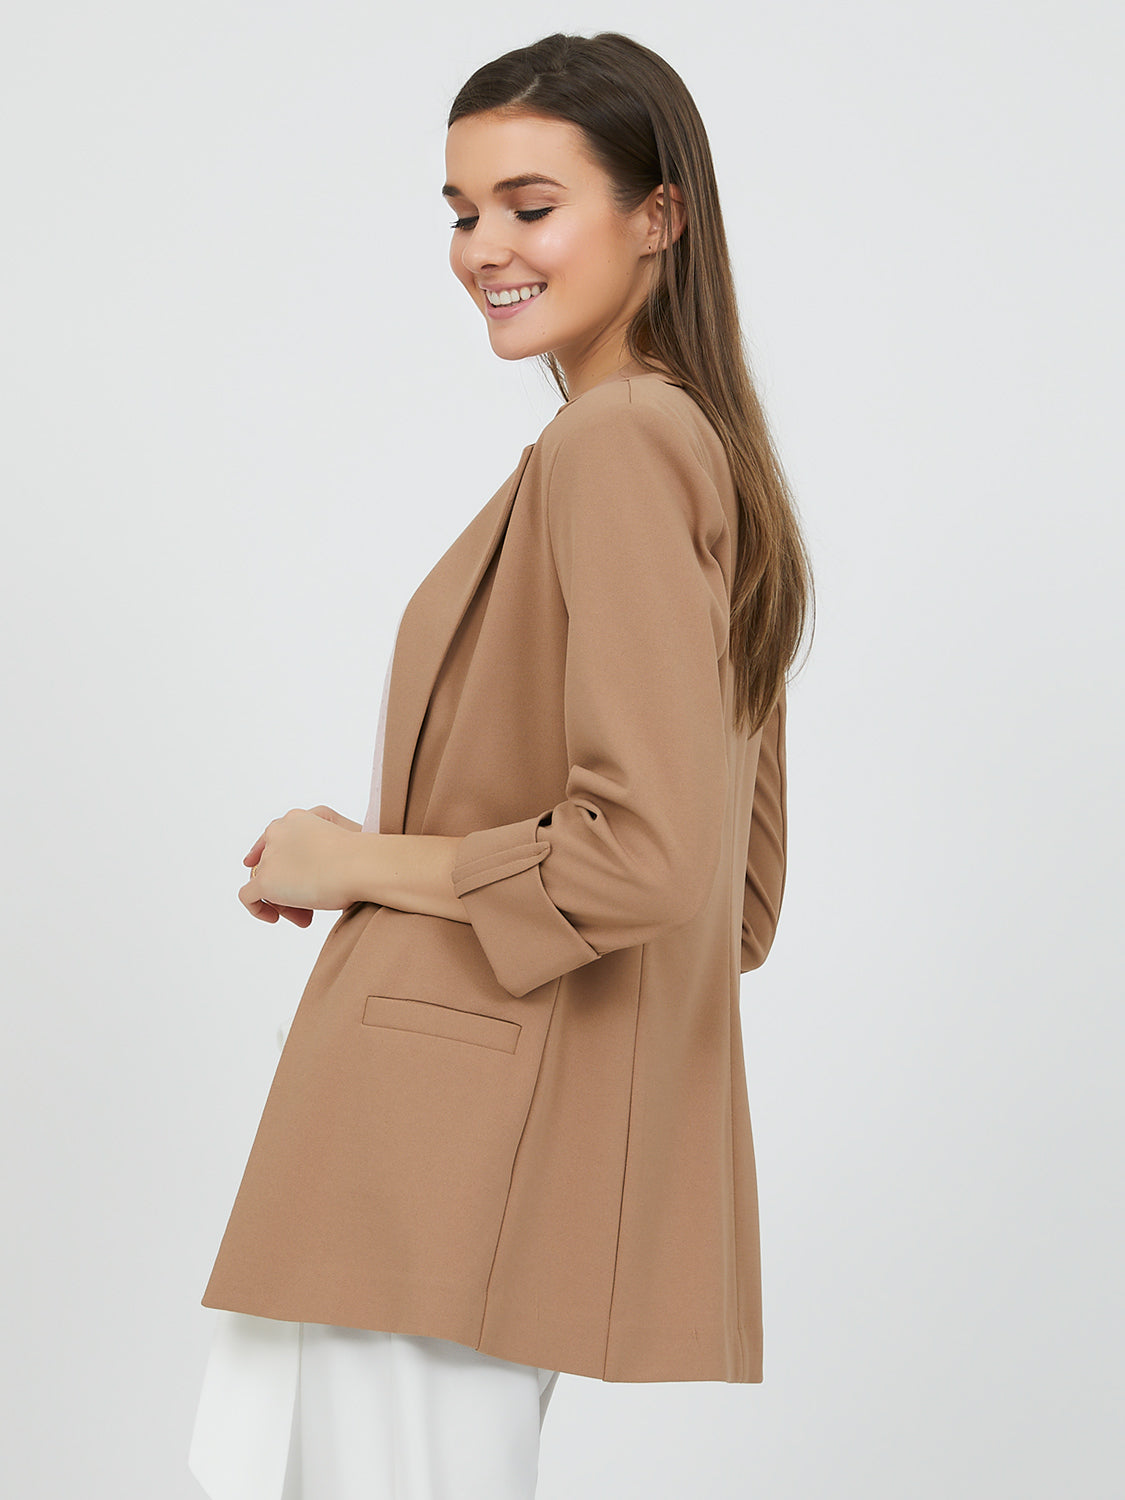 ¾ Sleeve Relaxed Fit Open Front Blazer